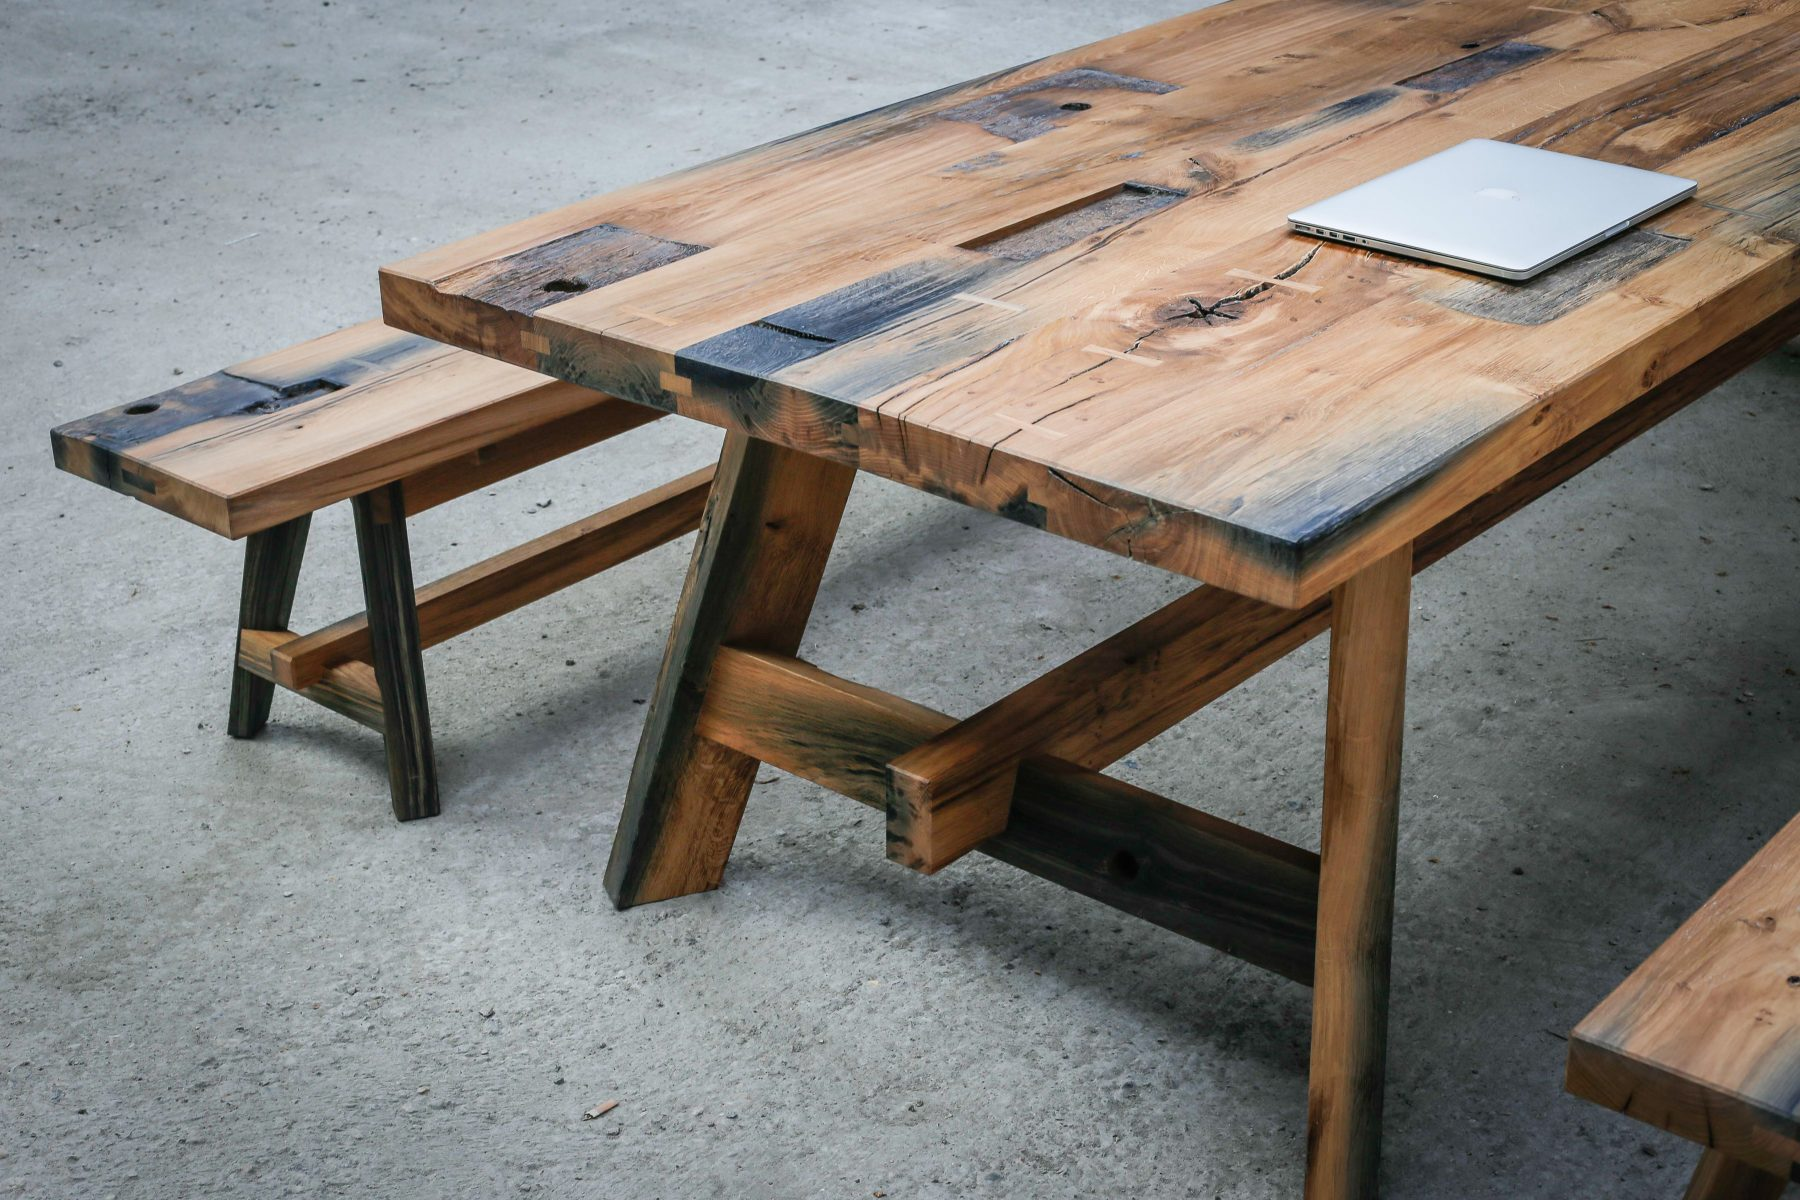 Black Oak table reclaimed timber from Avon and Kennet canal. Large table beautiful timber